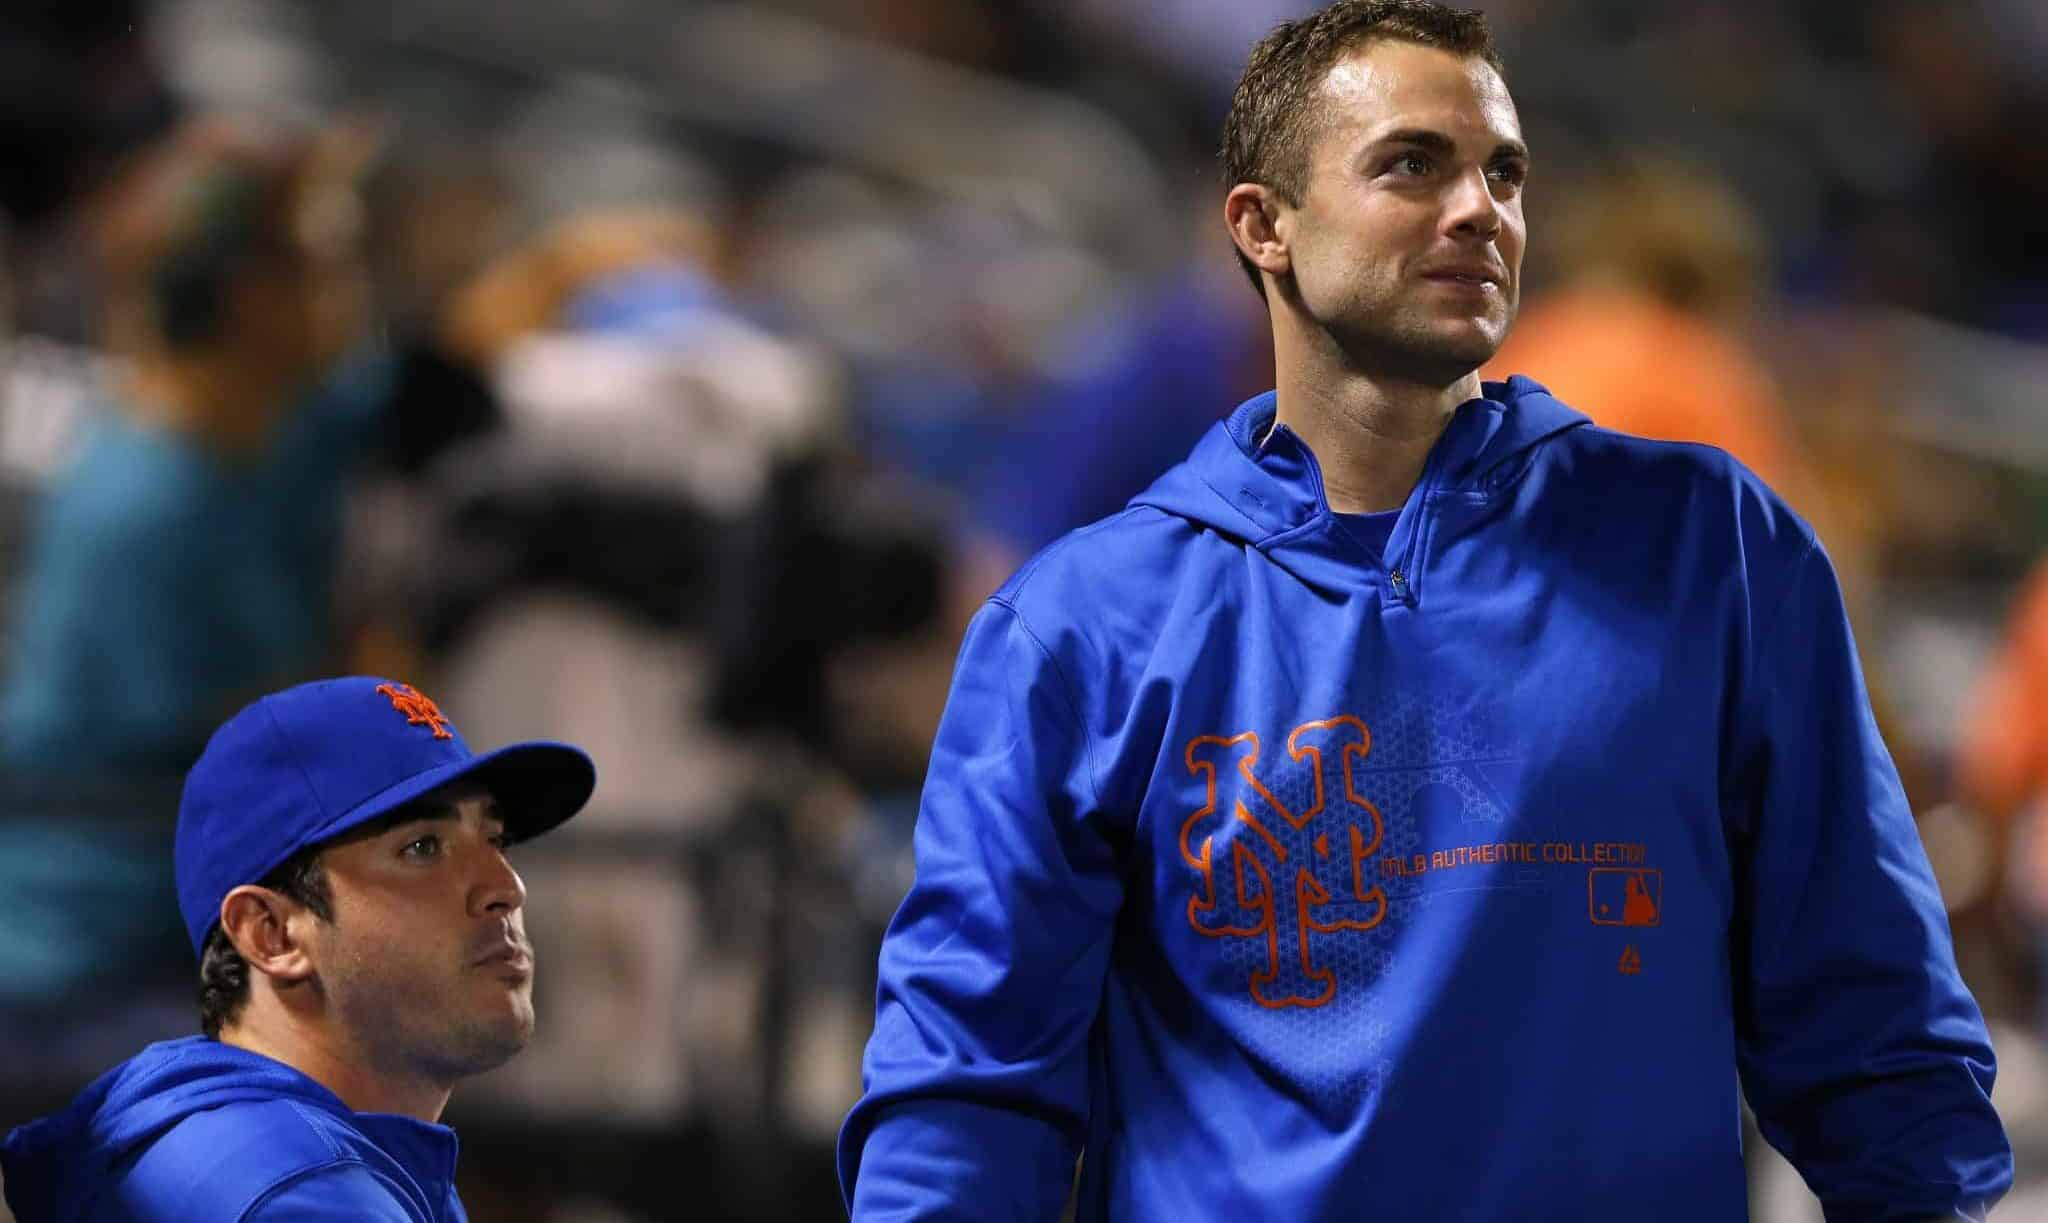 NEW YORK, NY - AUGUST 26: Injured pitcher Matt Harvey #33 and third baseman David Wright #5 of the New York Mets looks on from the dugout during a game against the Philadelphia Phillies on August 26, 2013 at Citi Field in the Flushing neighborhood of the Queens borough of New York City. It was announced before the game that Harvey was diagnosed with a partially torn ulnar collateral ligament (UCL) and Wright is recovering from a a hamstring injury.